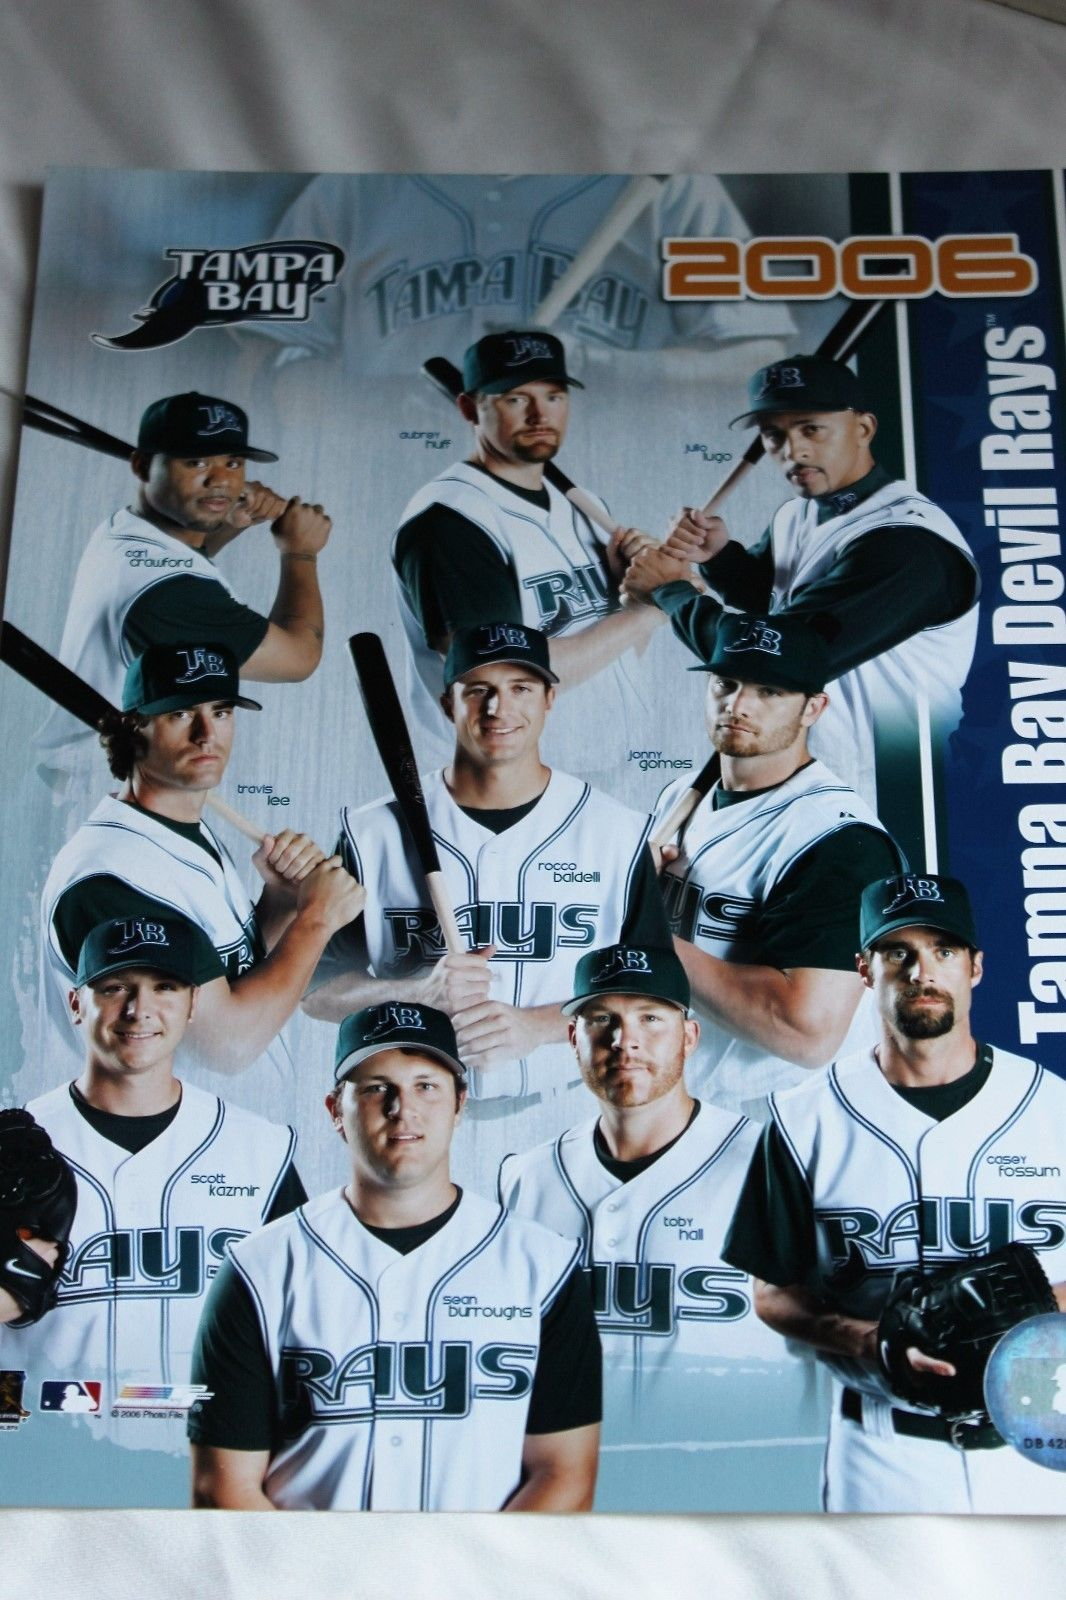 Tampa Bay Rays 2006 Team Photo 8x10 Color - Glossy image 2